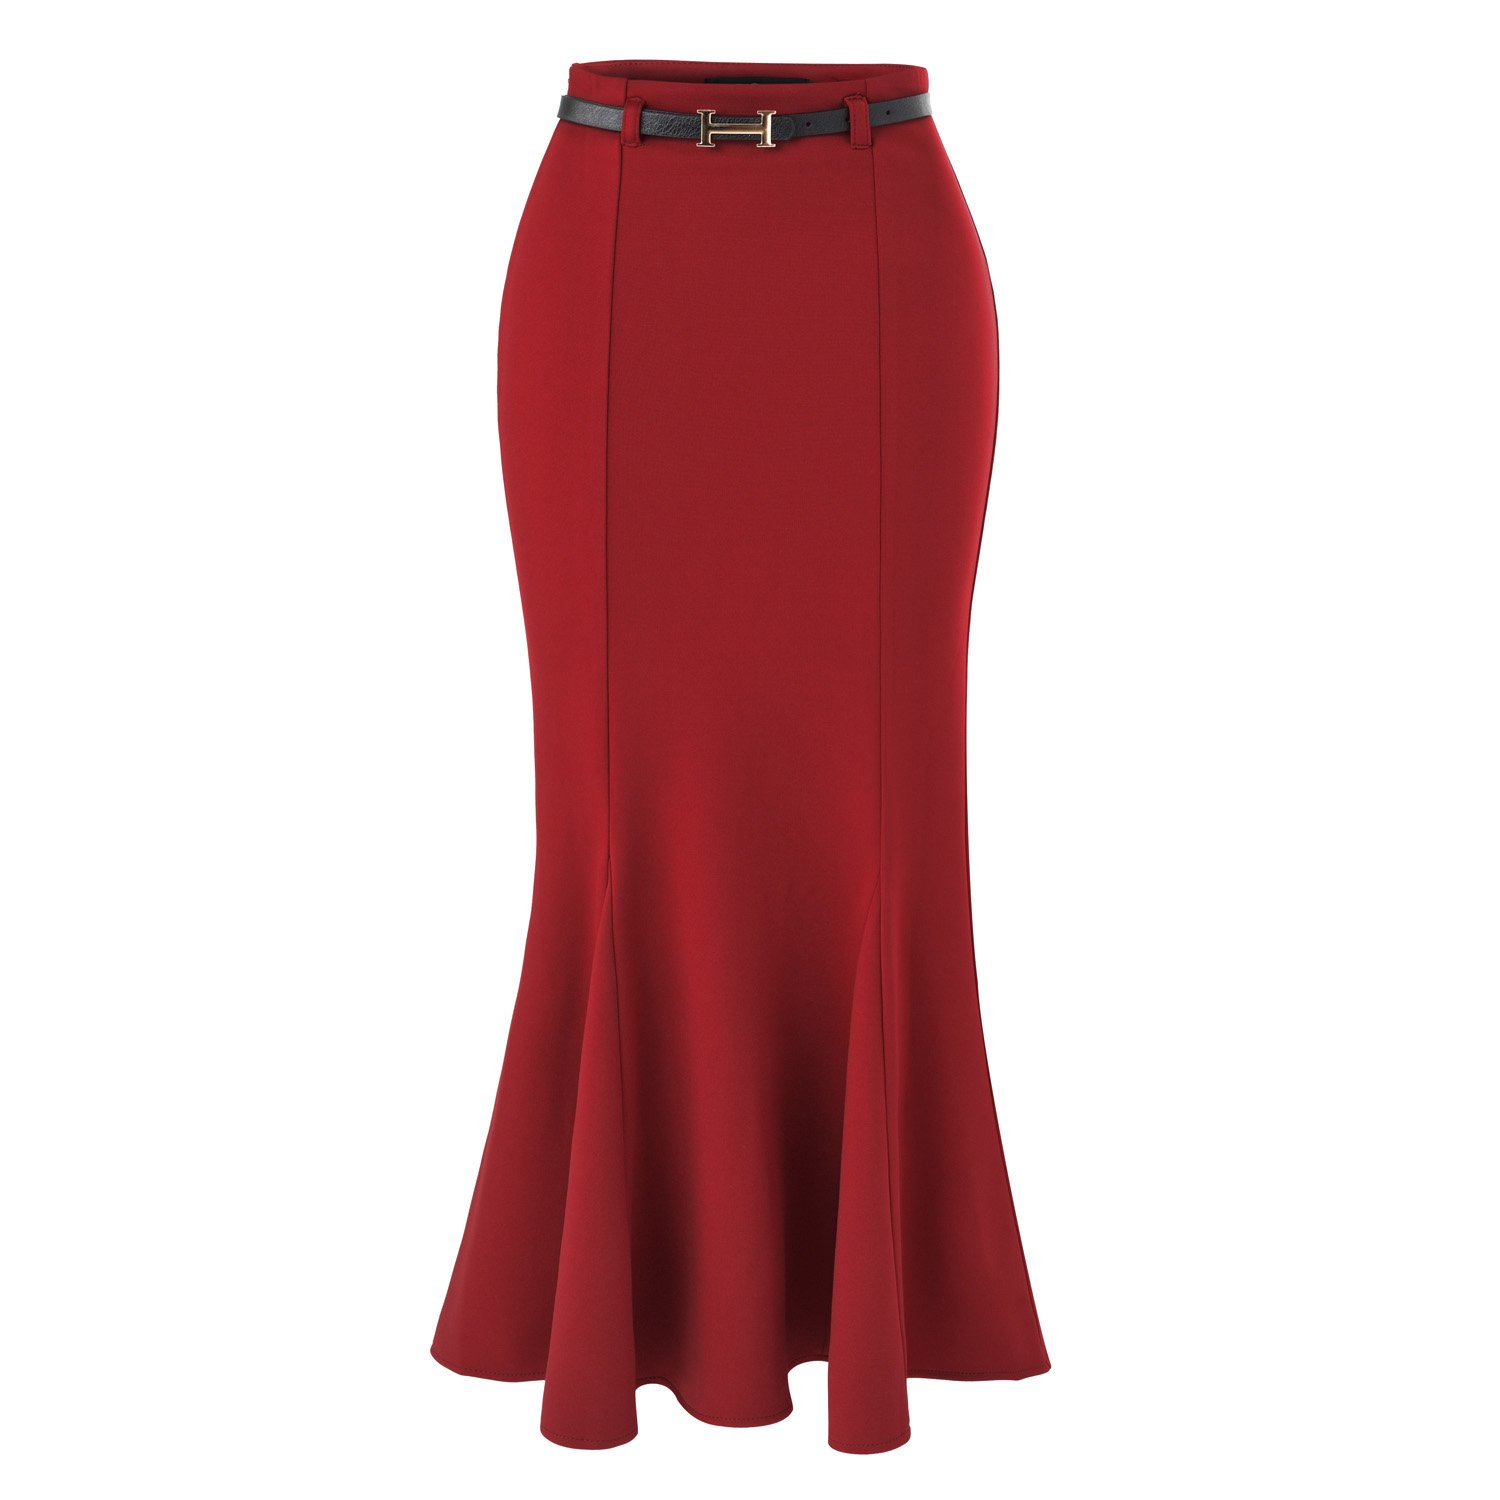 Retro Skirts: Vintage, Pencil, Circle, & Plus Sizes ISYITLTY Womens High Waist Fishtail Mermaid Bodycon Pencil Long Skirt With Belt $33.99 AT vintagedancer.com